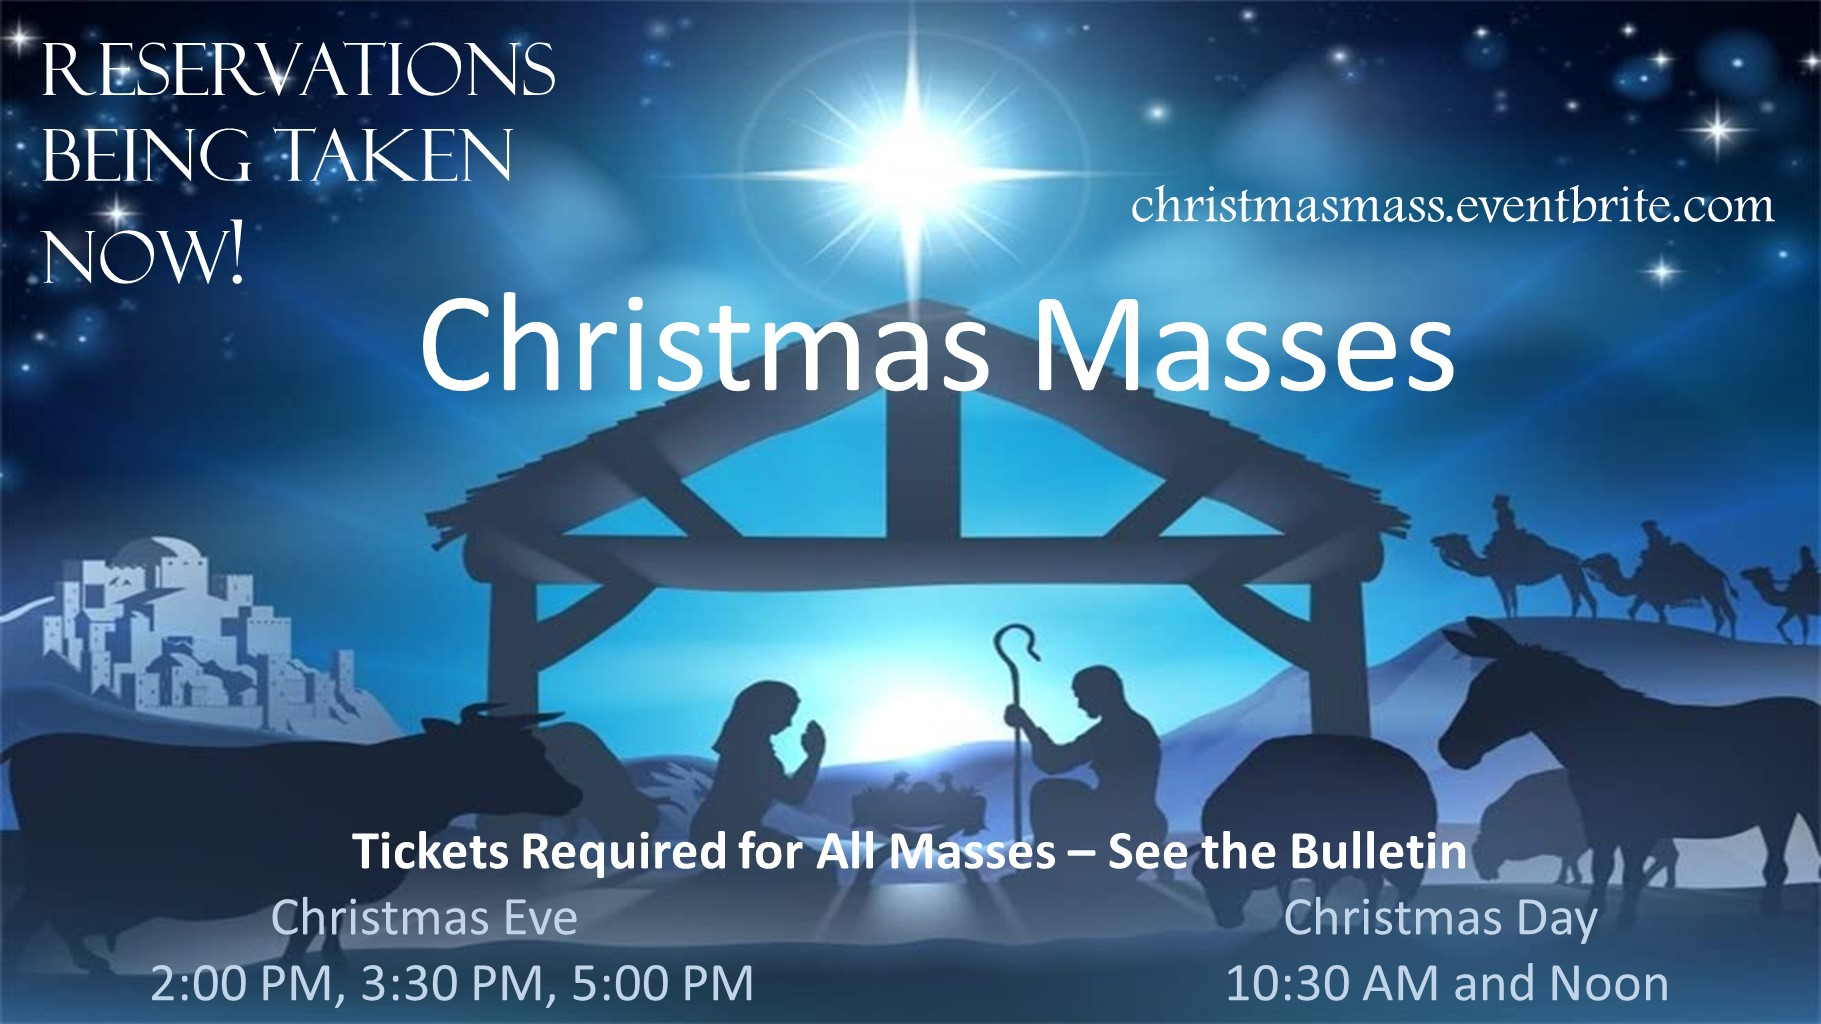 101120 Christmas Mass Reservations